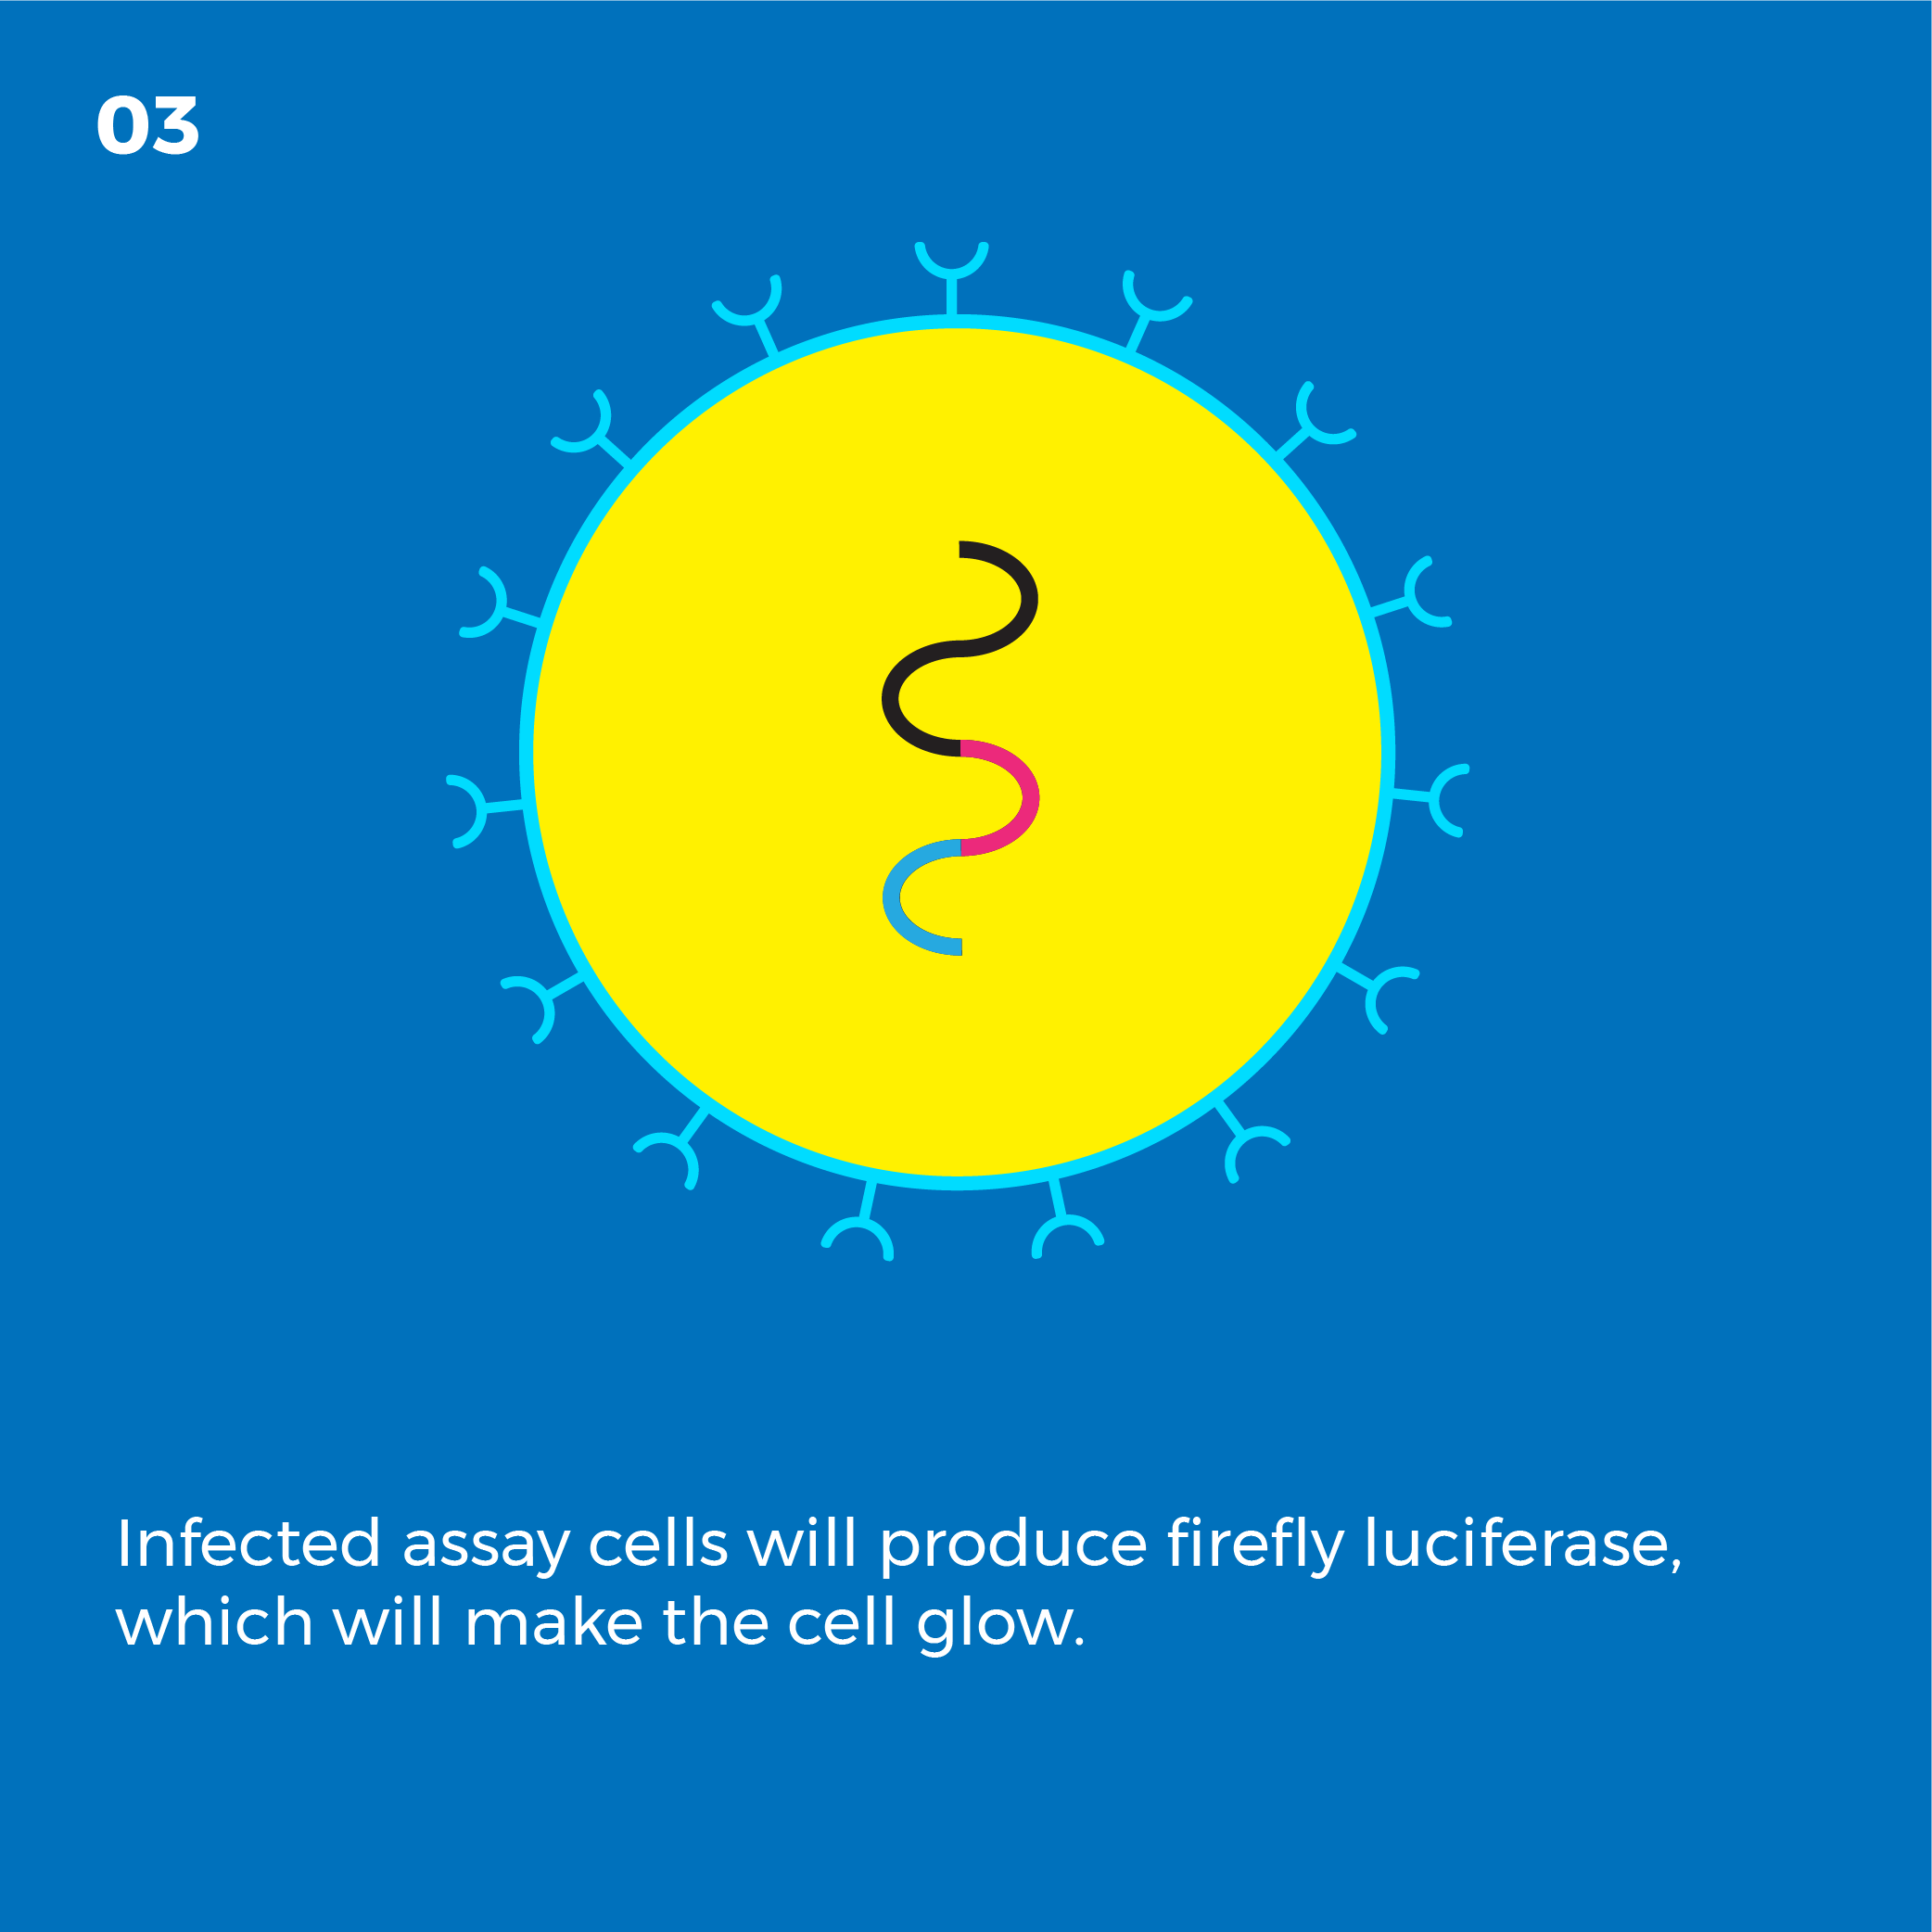 Infected assay cells will produce firefly luciferase, which will make the cell glow.